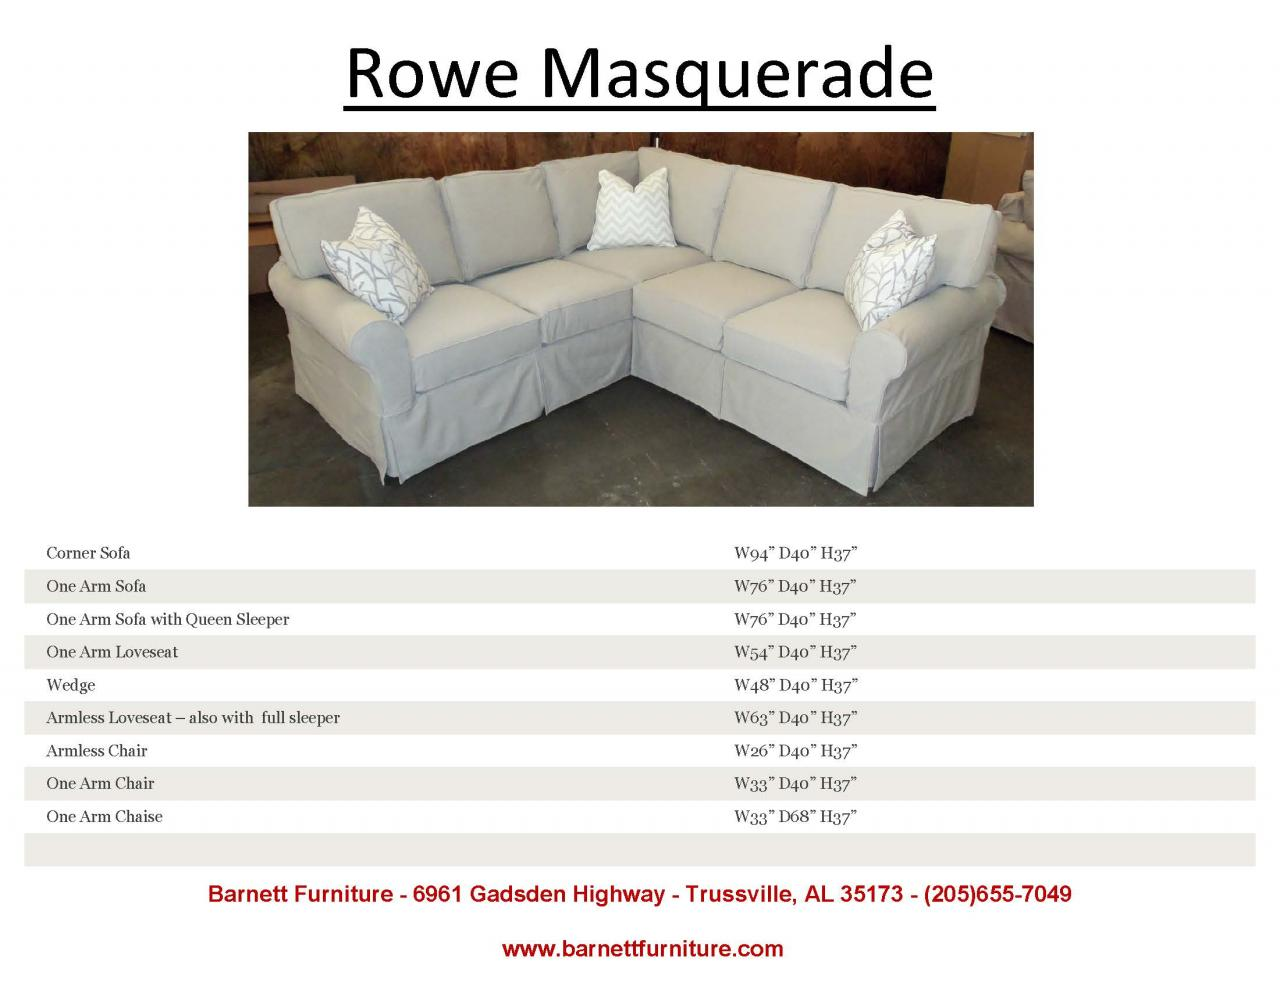 one arm sofa slipcover cover for with chaise barnett furniture sofas sectionals chair and ottoman rowe masquerade sectional